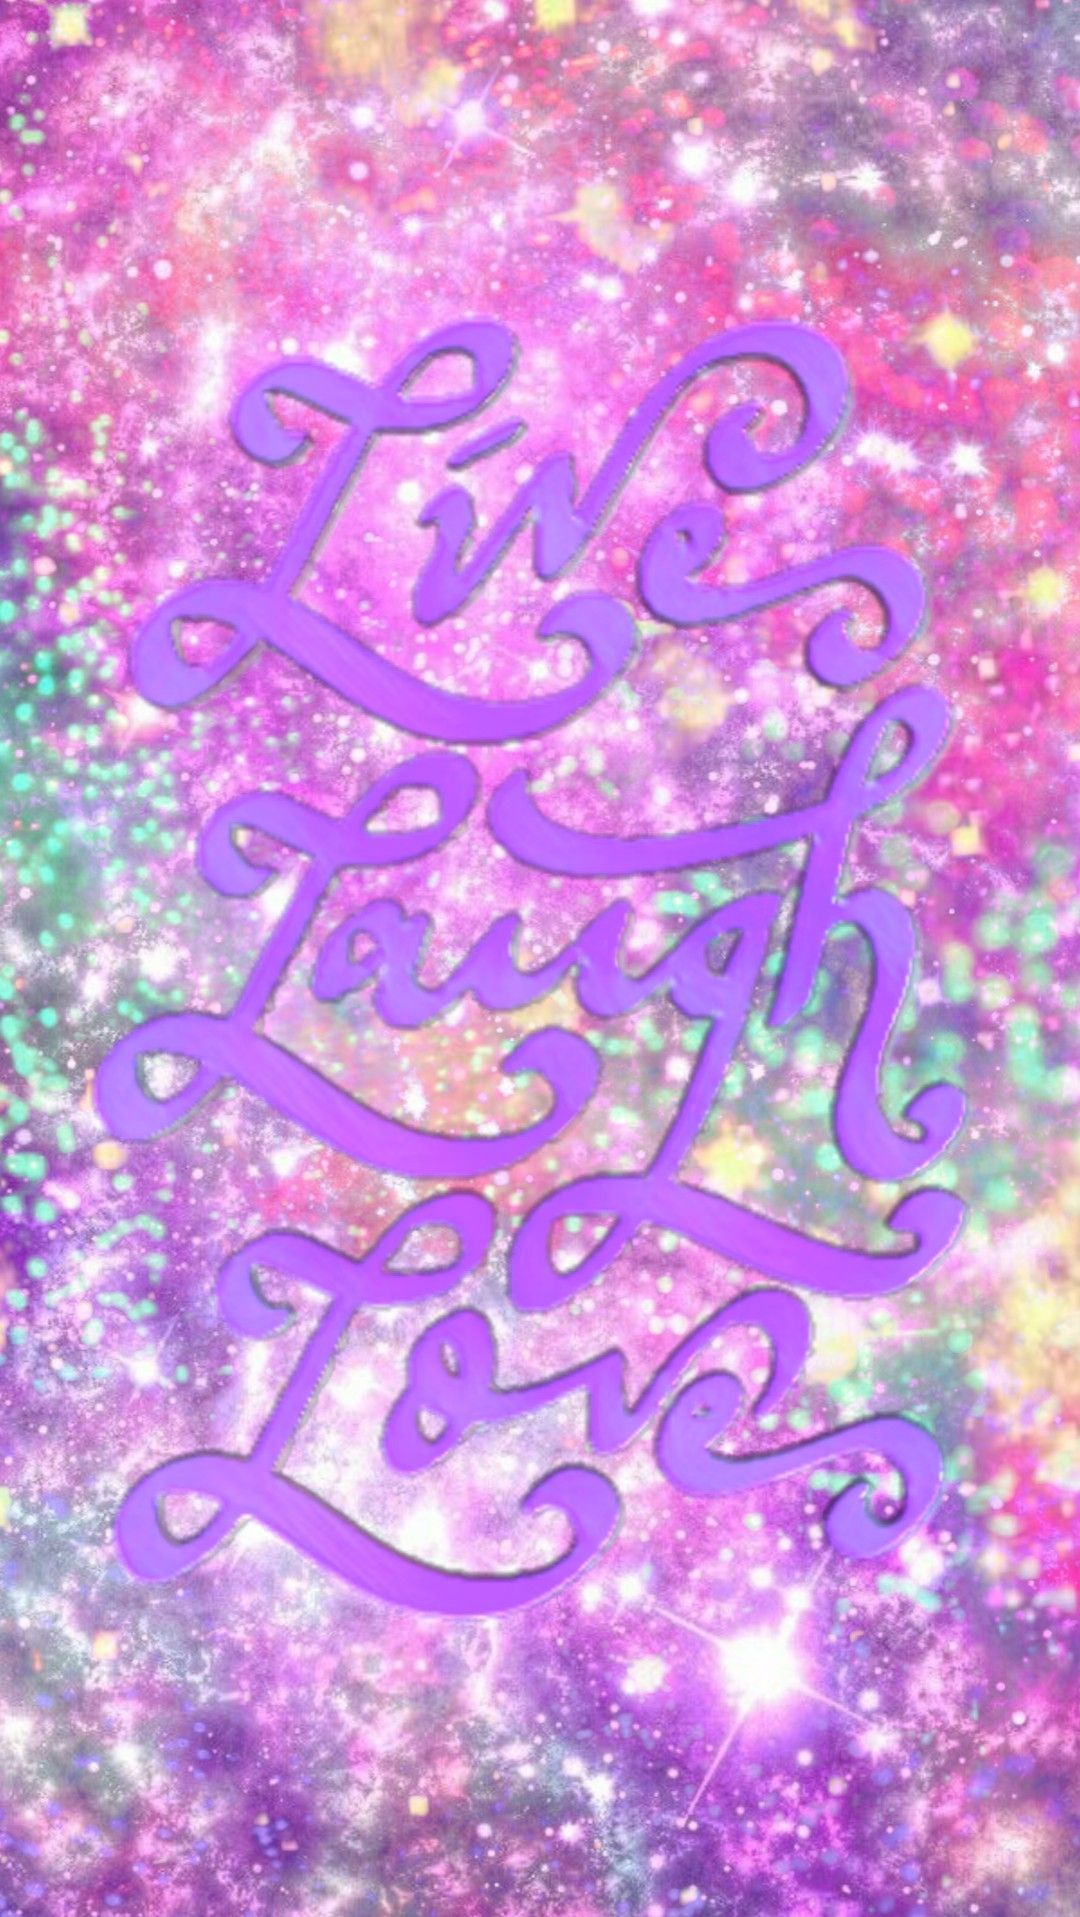 Live Laugh Love Galaxy Made By Me Purple Sparkly Wallpapers Backgrounds Sparkles Glittery Galaxy Art Abstr Neon Signs Aesthetic Wallpapers Wallpaper Galaxy live laugh love wallpaper